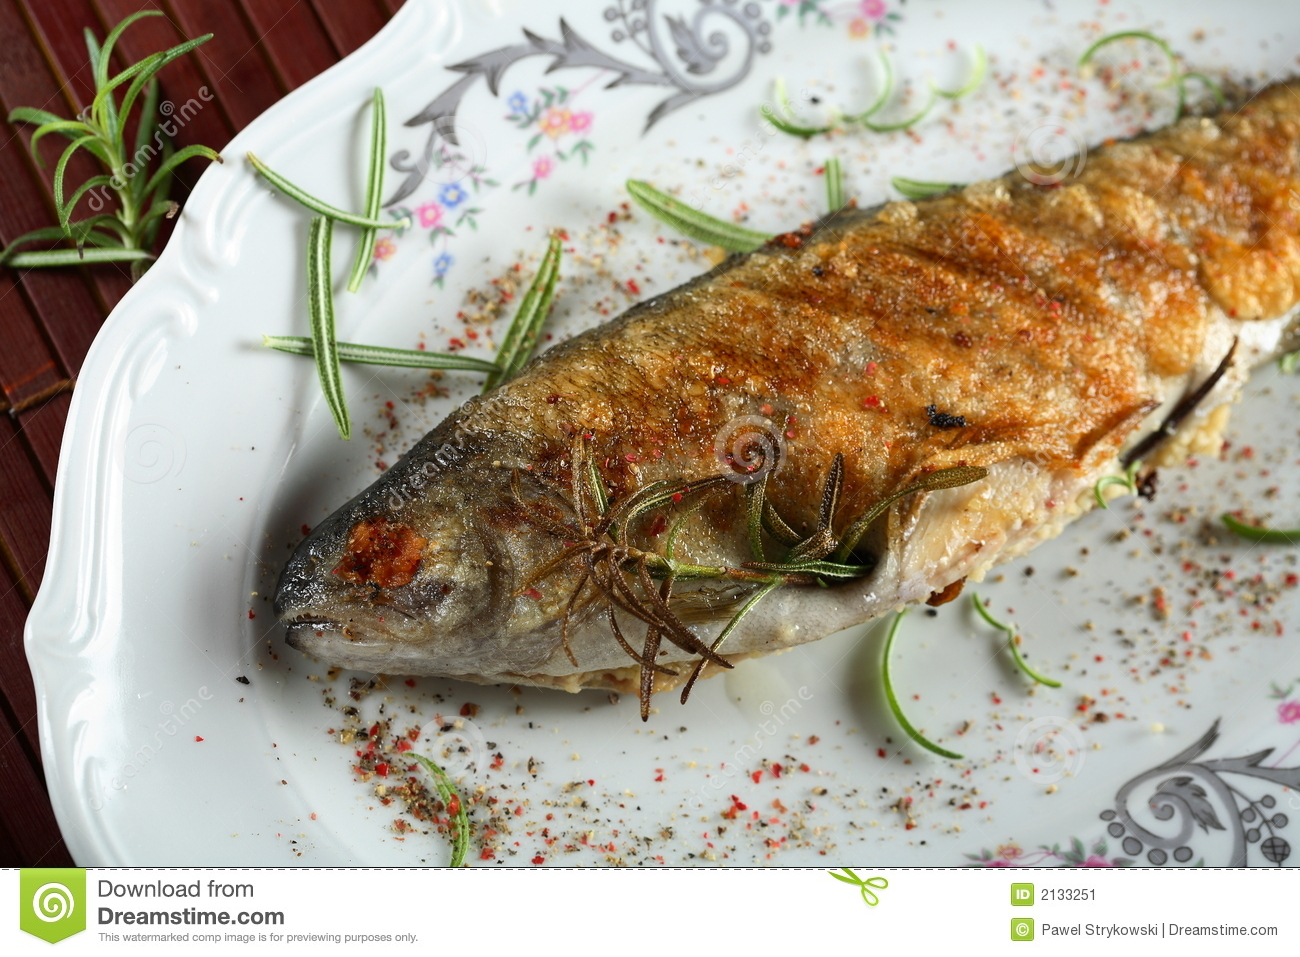 Stuffed grilled trout in the breadcrumbs decorated with herbs.